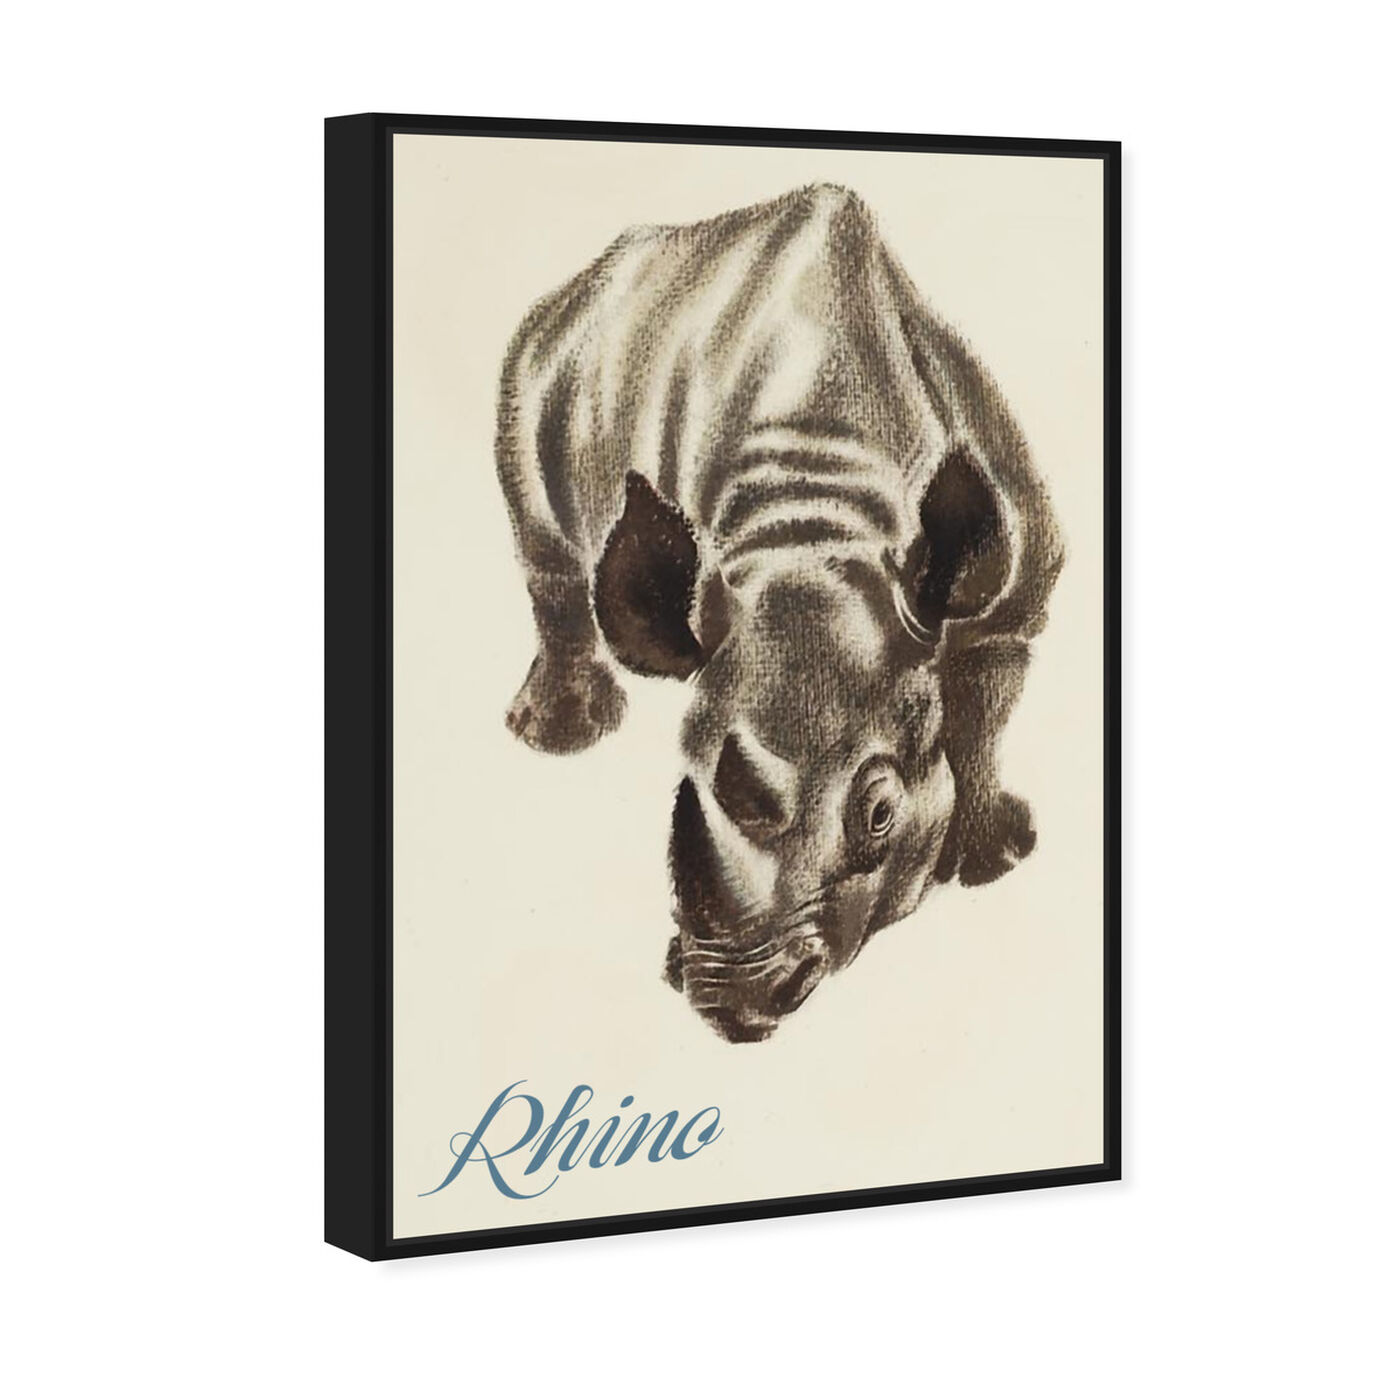 Angled view of Rhino featuring animals and zoo and wild animals art.